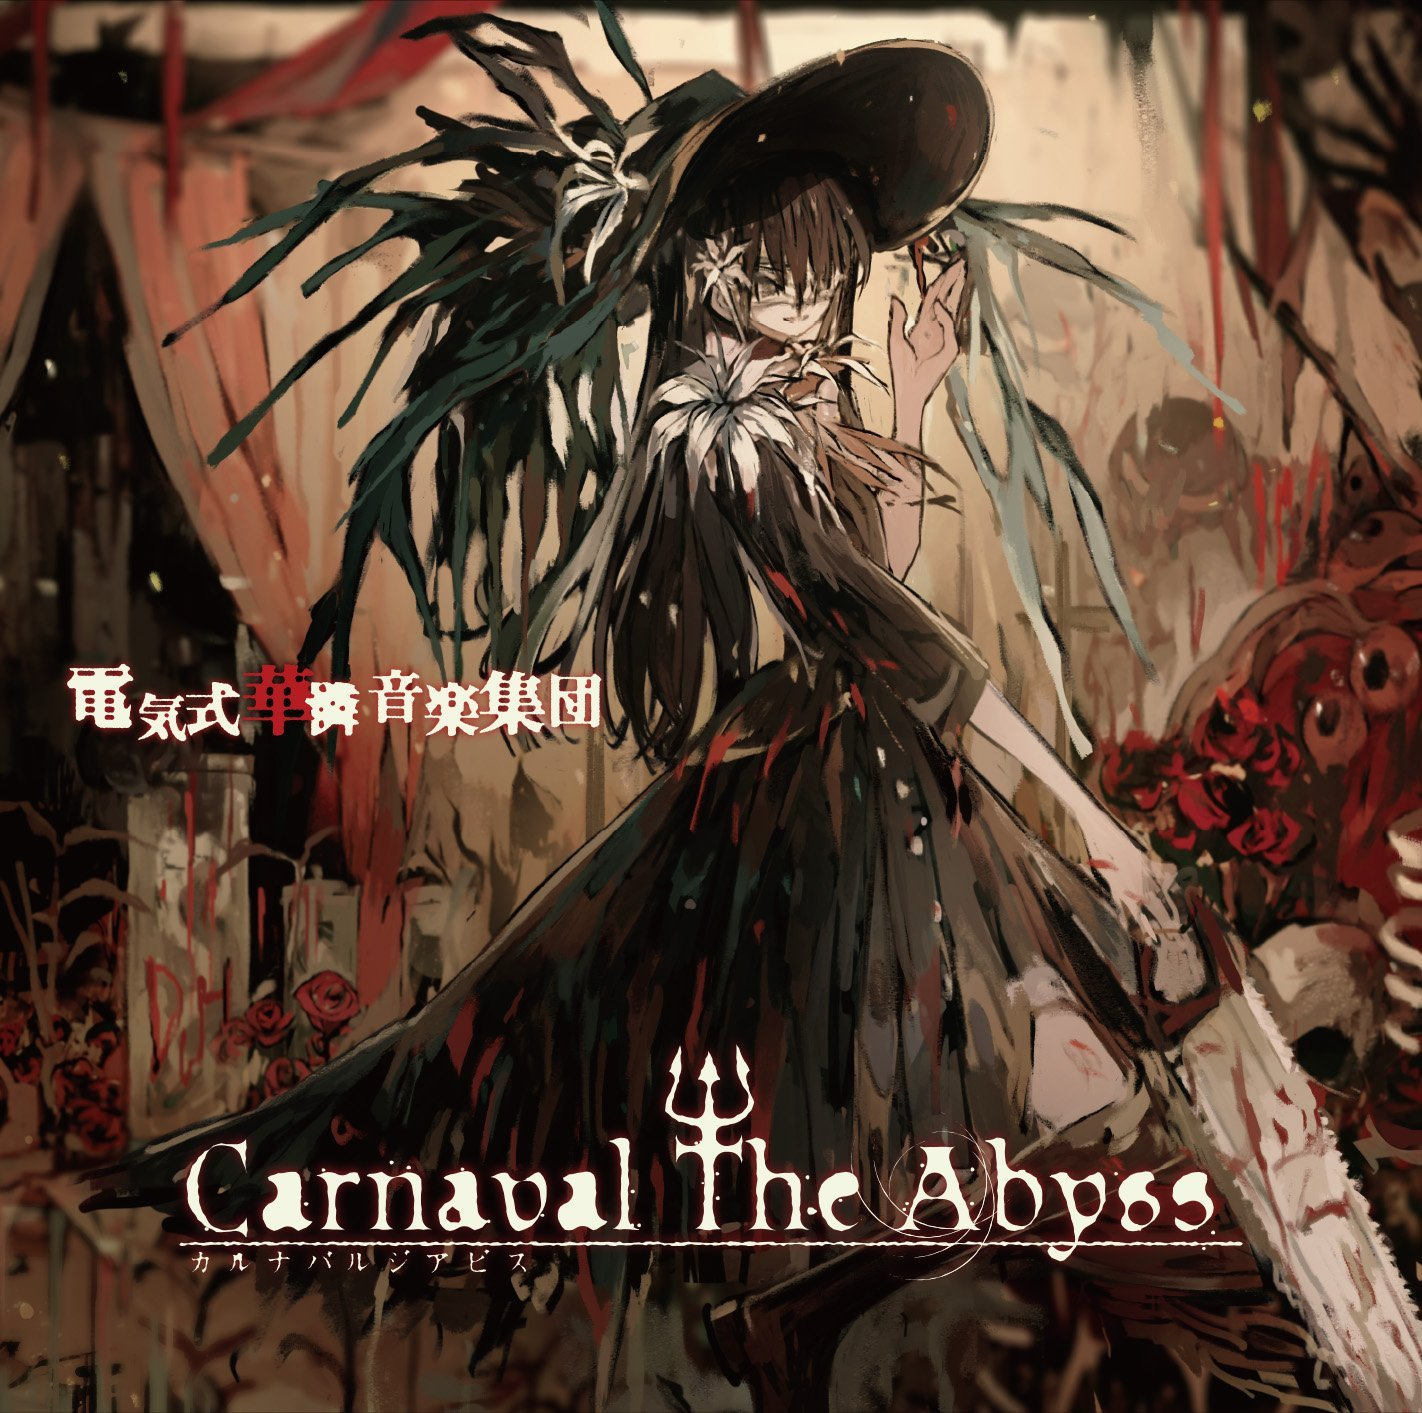 Denkare - Carnaval The Abyss